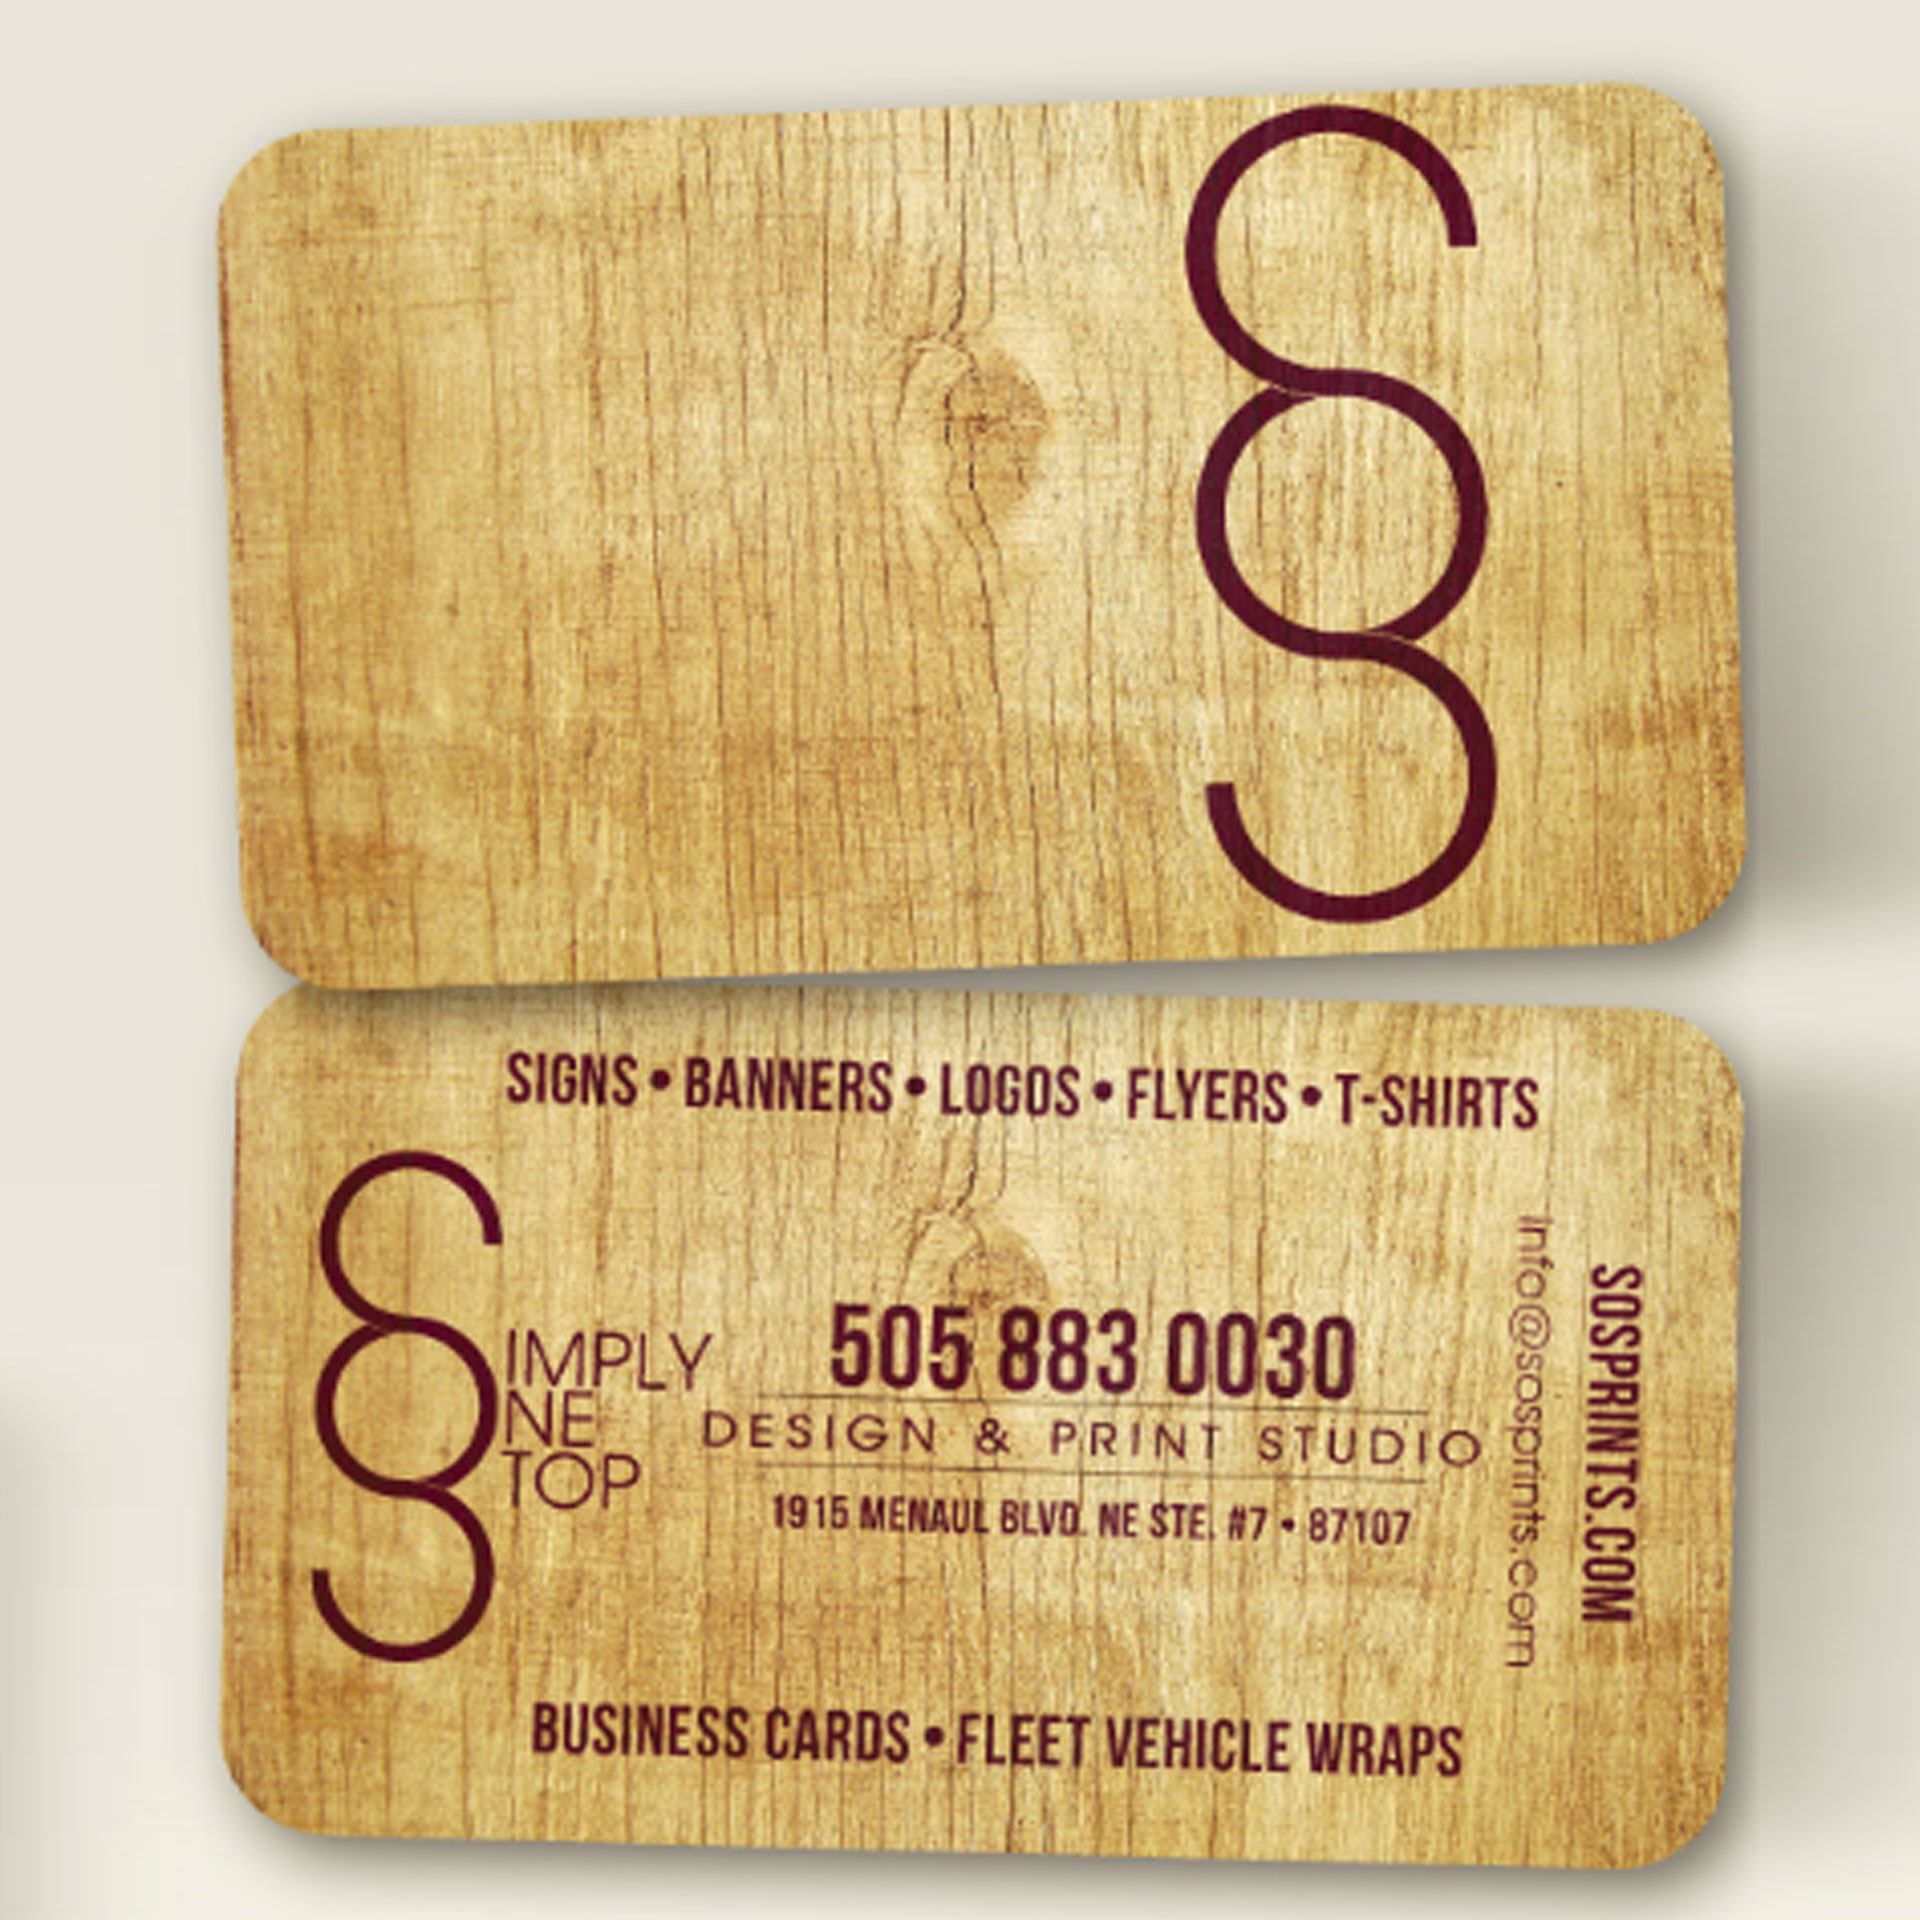 SOS_WOOD_BUSINESS_CARD